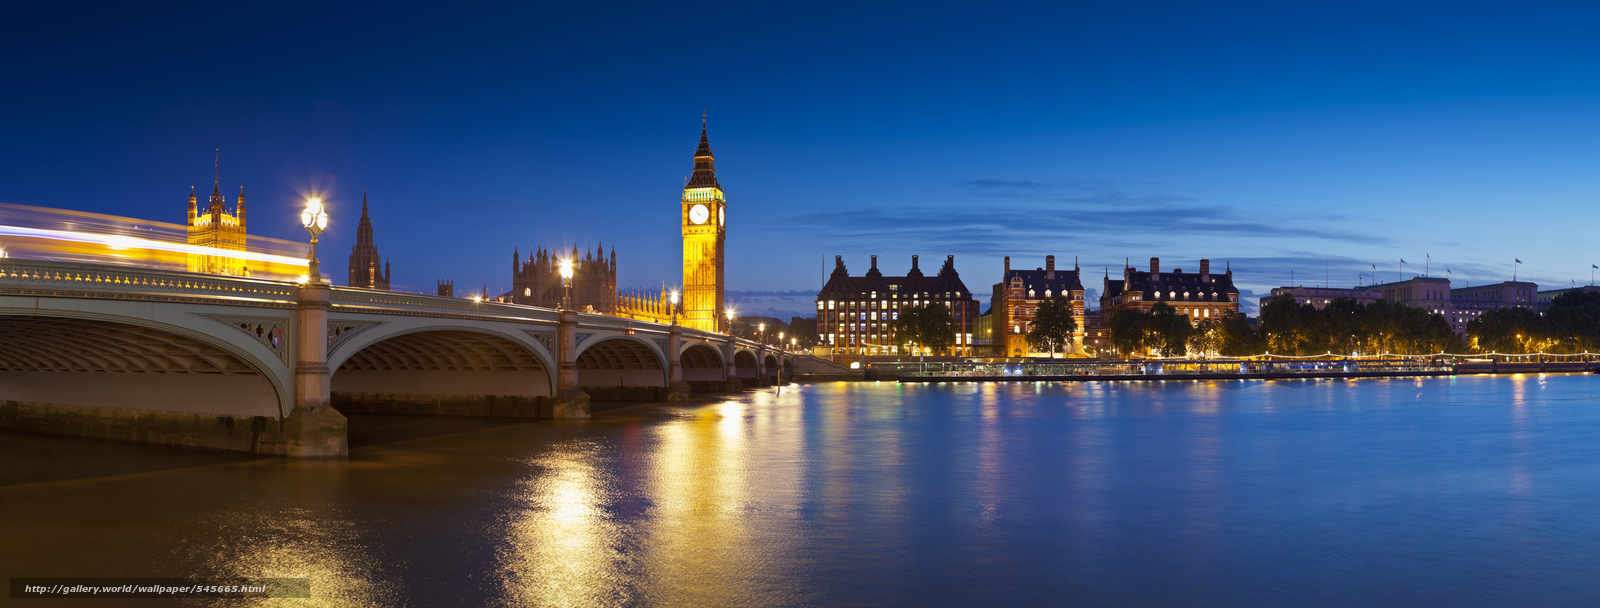 wallpaper london  bridge  britain  River Thames free desktop wallpaper    London Bridge At Night Wallpaper